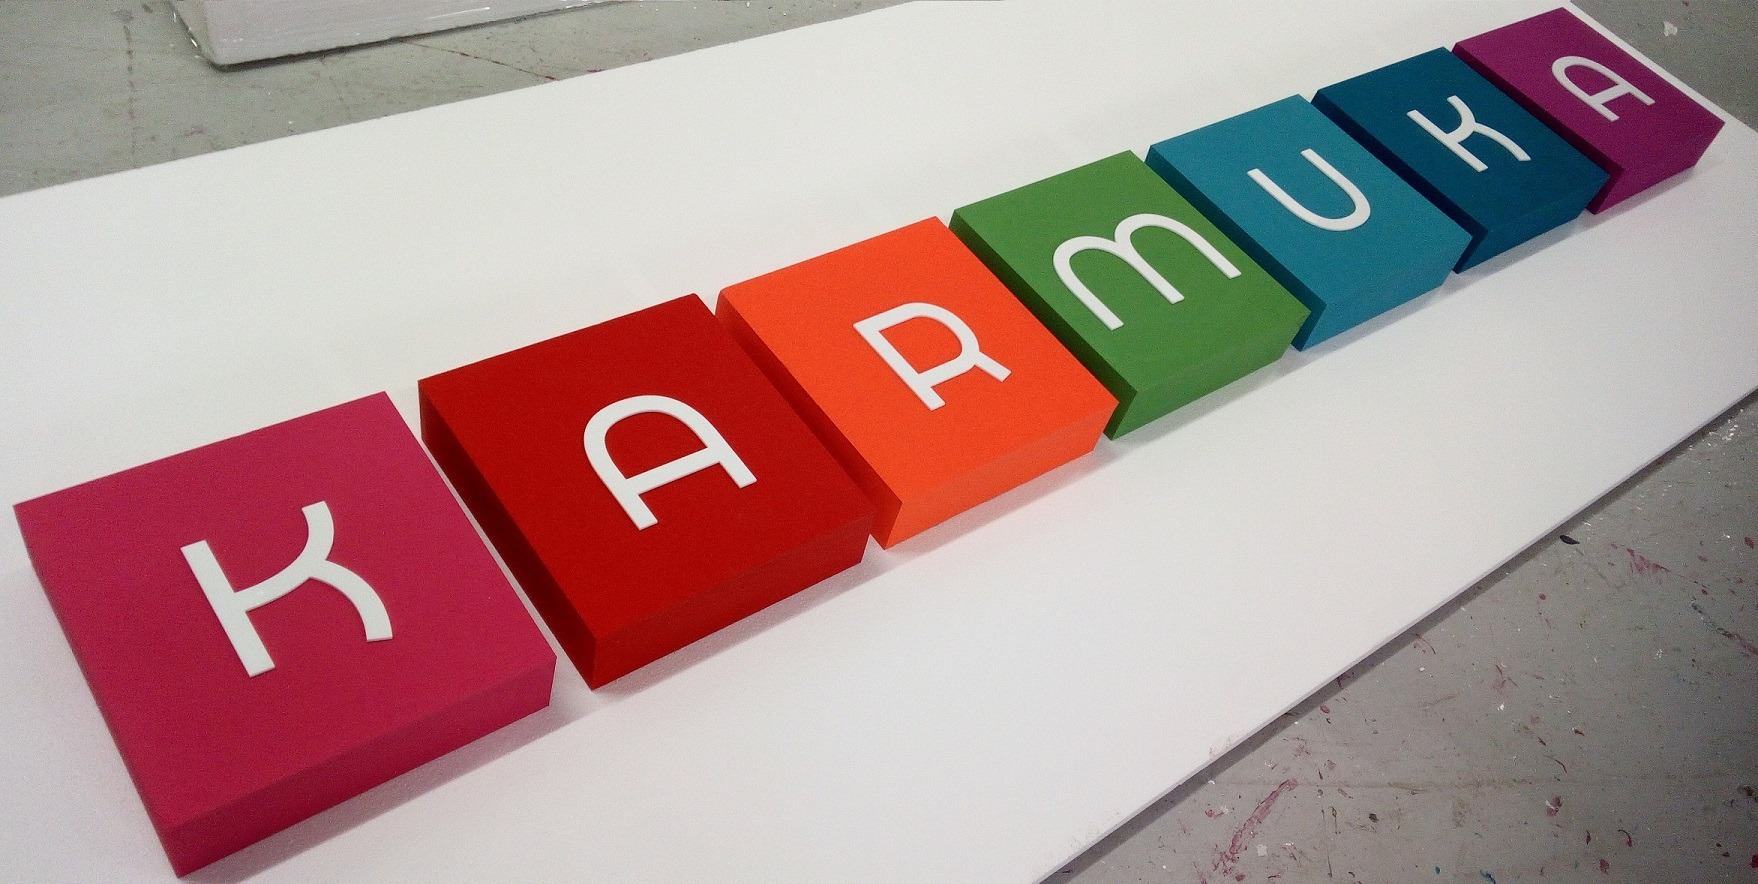 bright styrofoam logo blocks